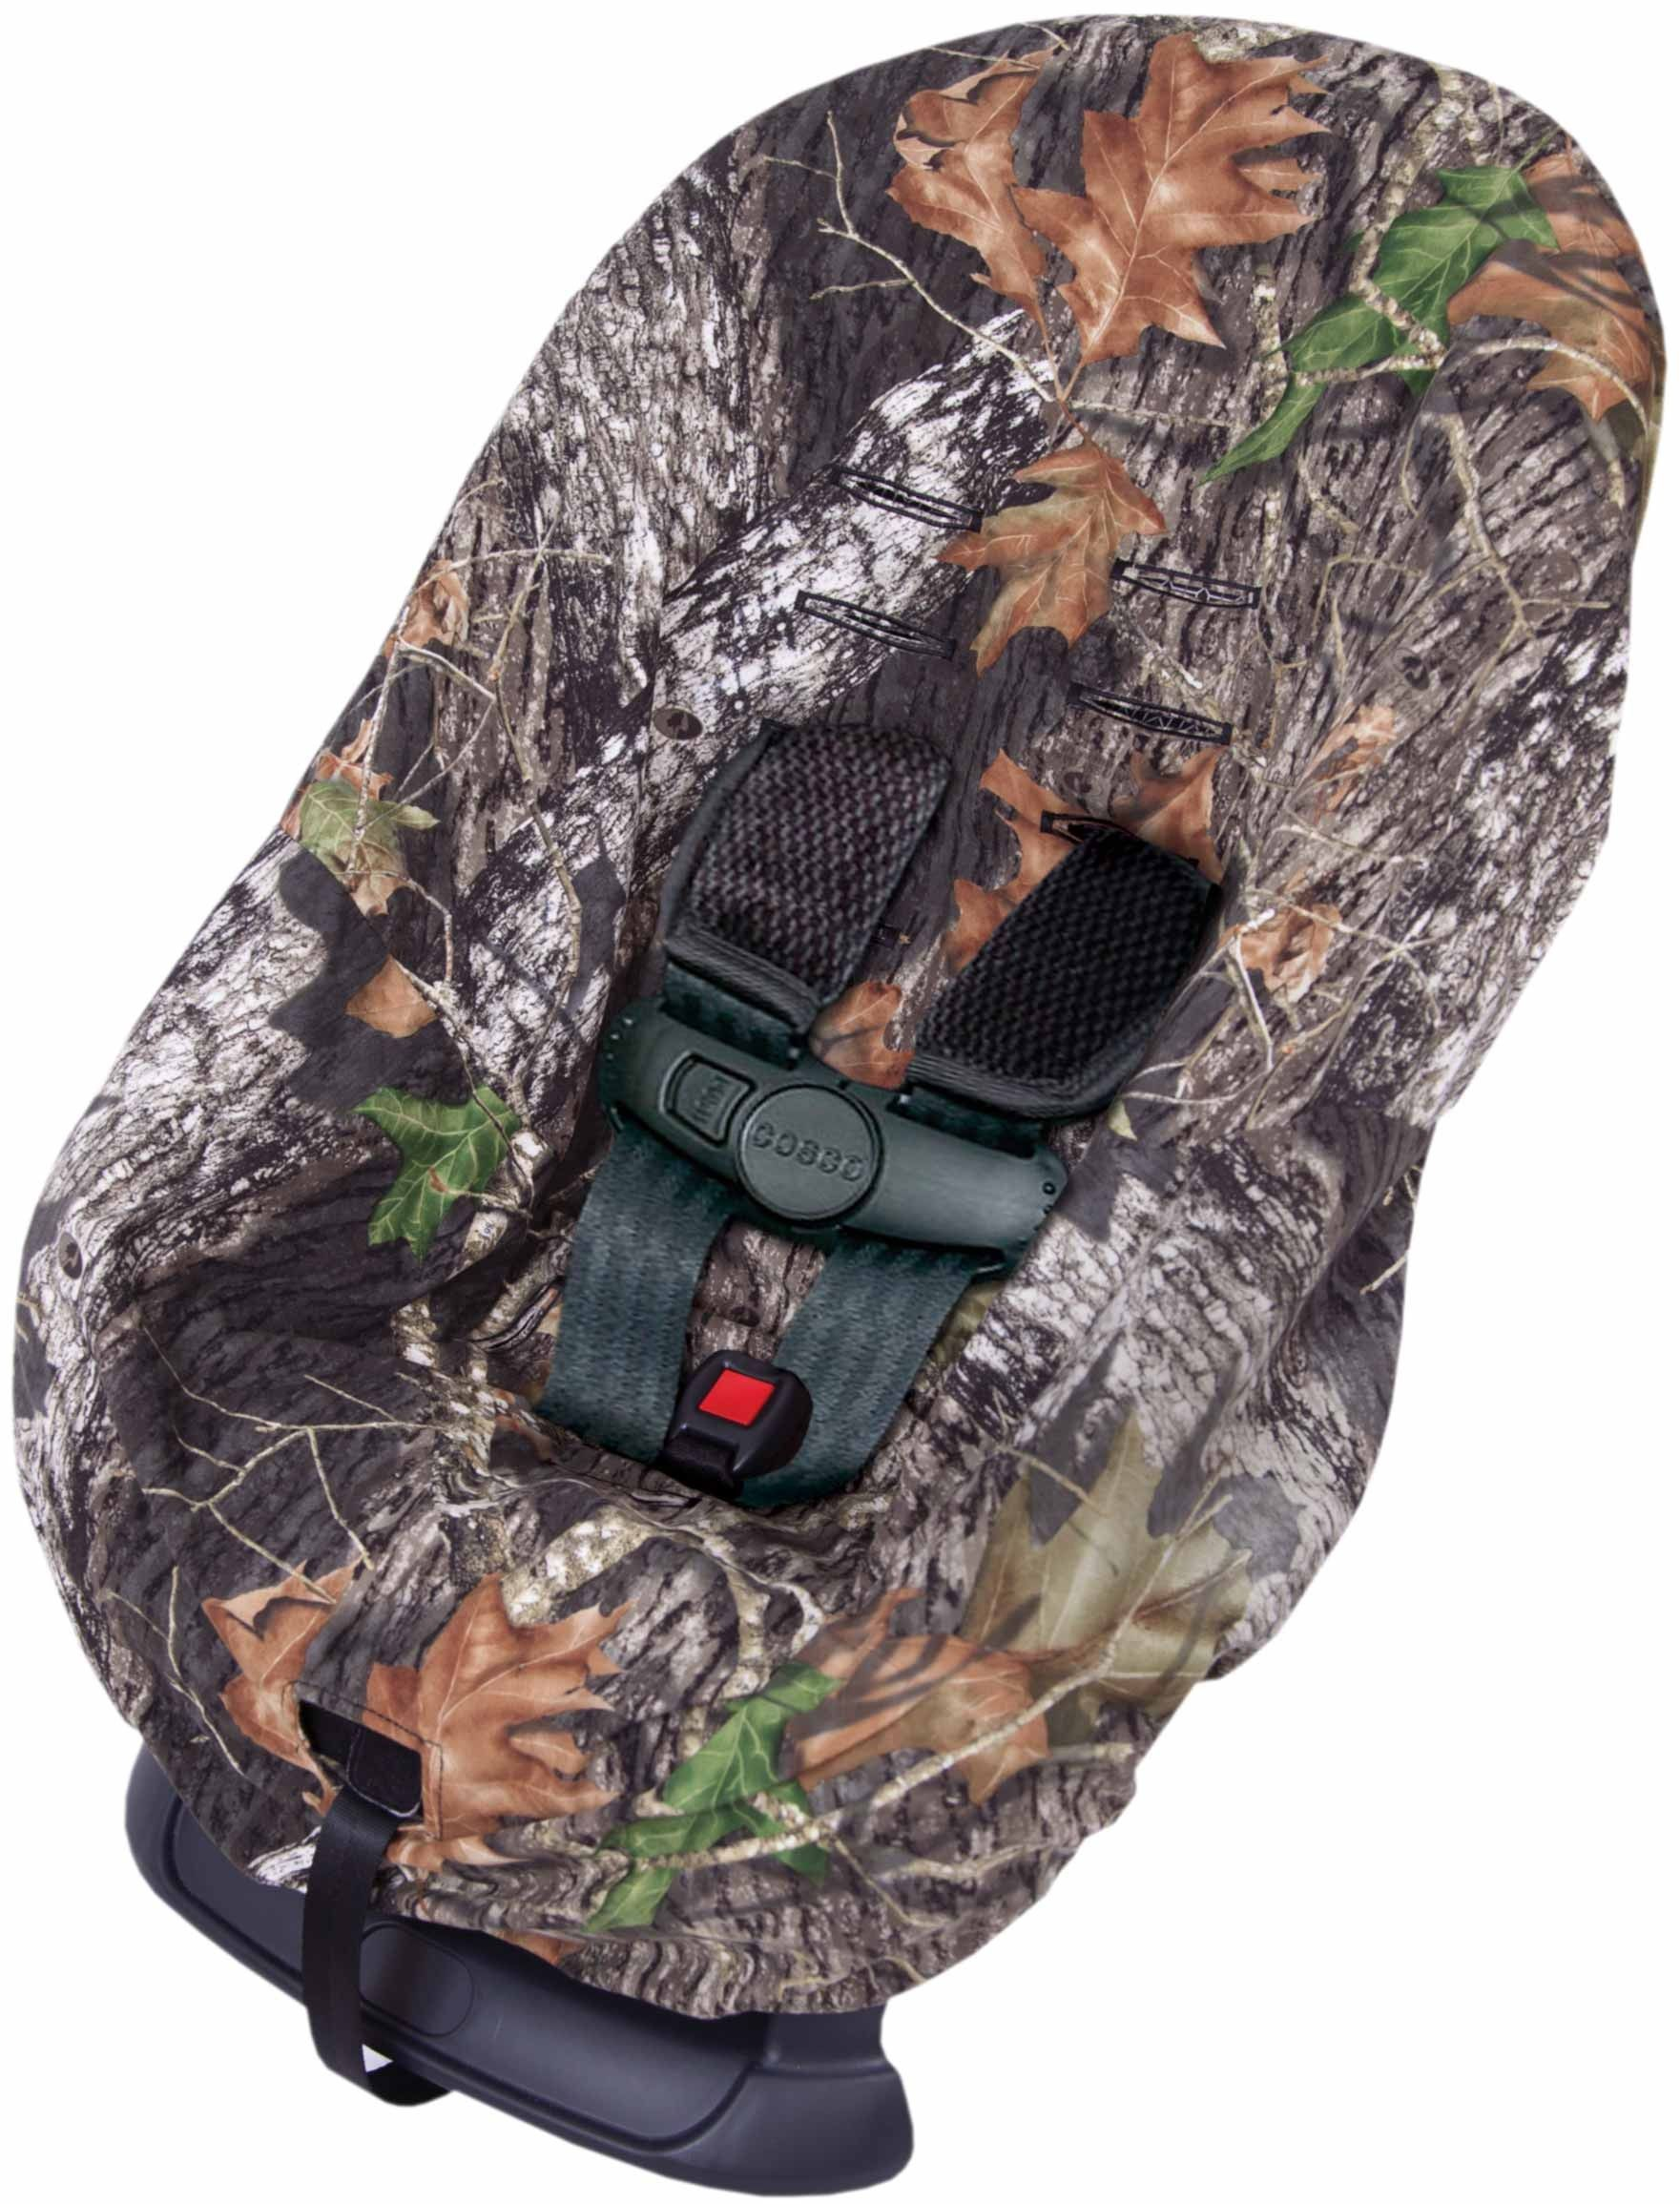 Camo Infant Baby Car Seat Cover Awesome What Country Is